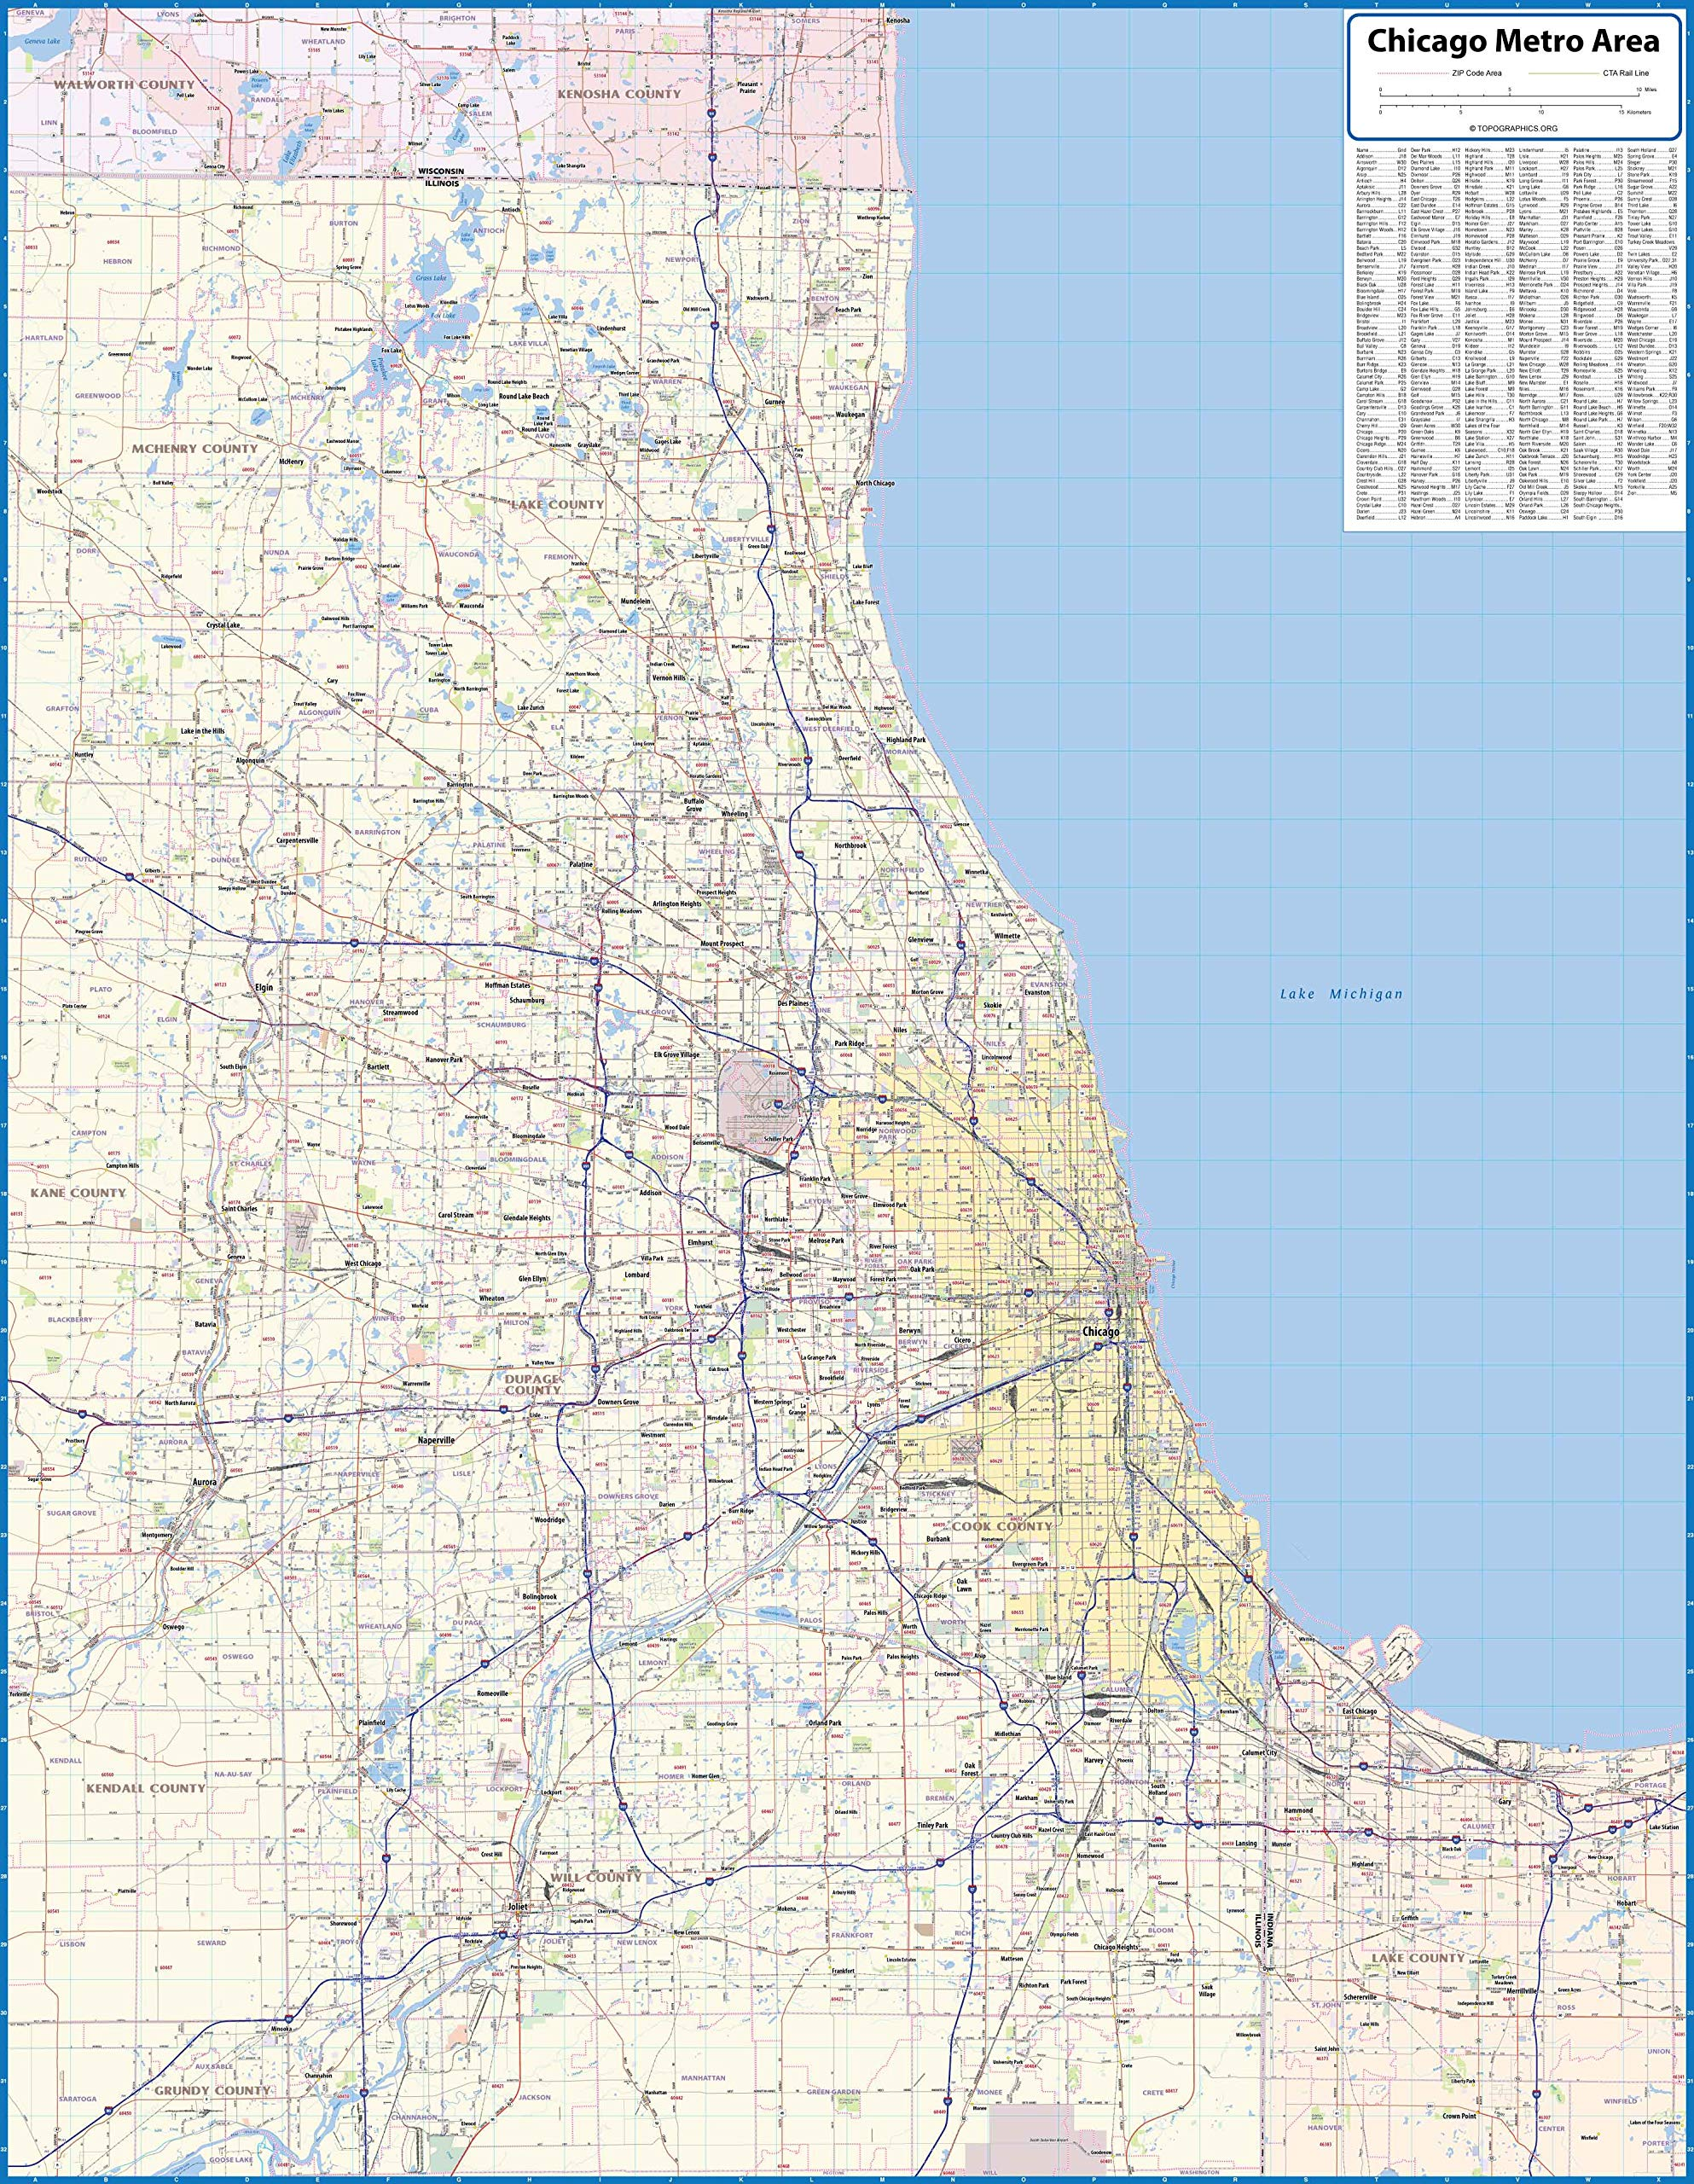 Chicago Metro Area Laminated Wall Map (42''x54'')